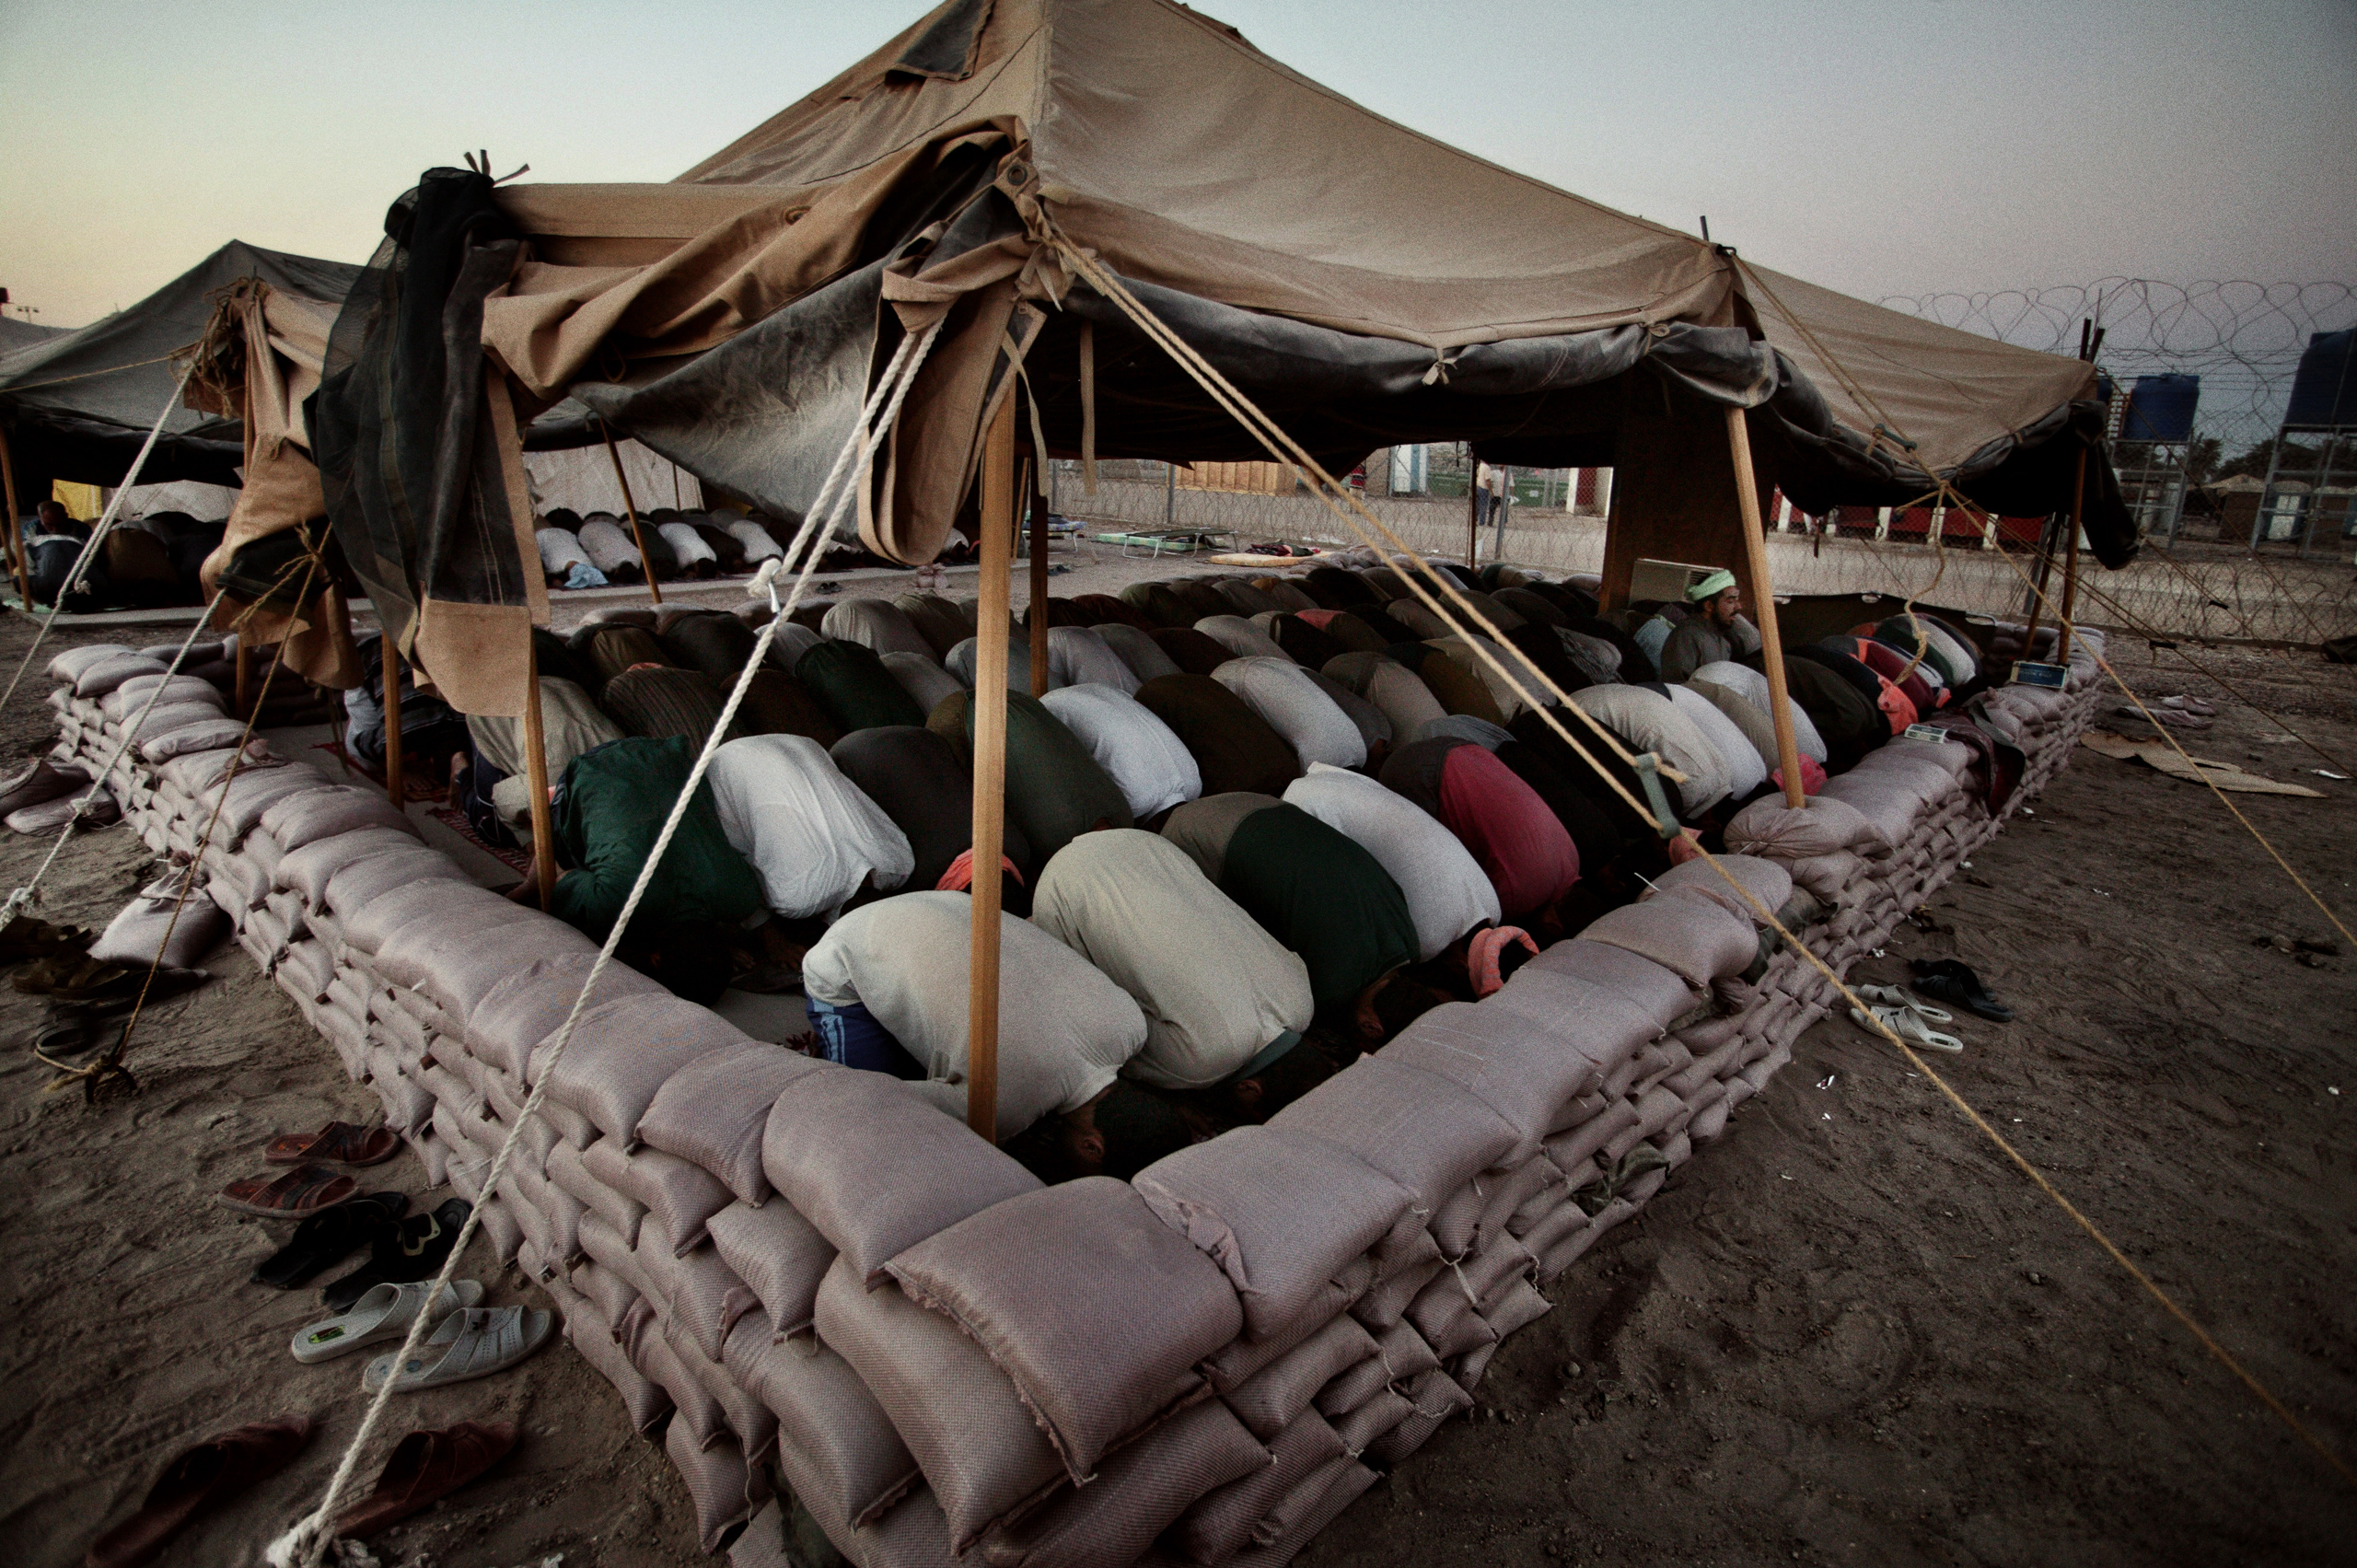 Friday prayer at Abu Ghraib prison on the outskirts of Baghdad, June 25, 2004.